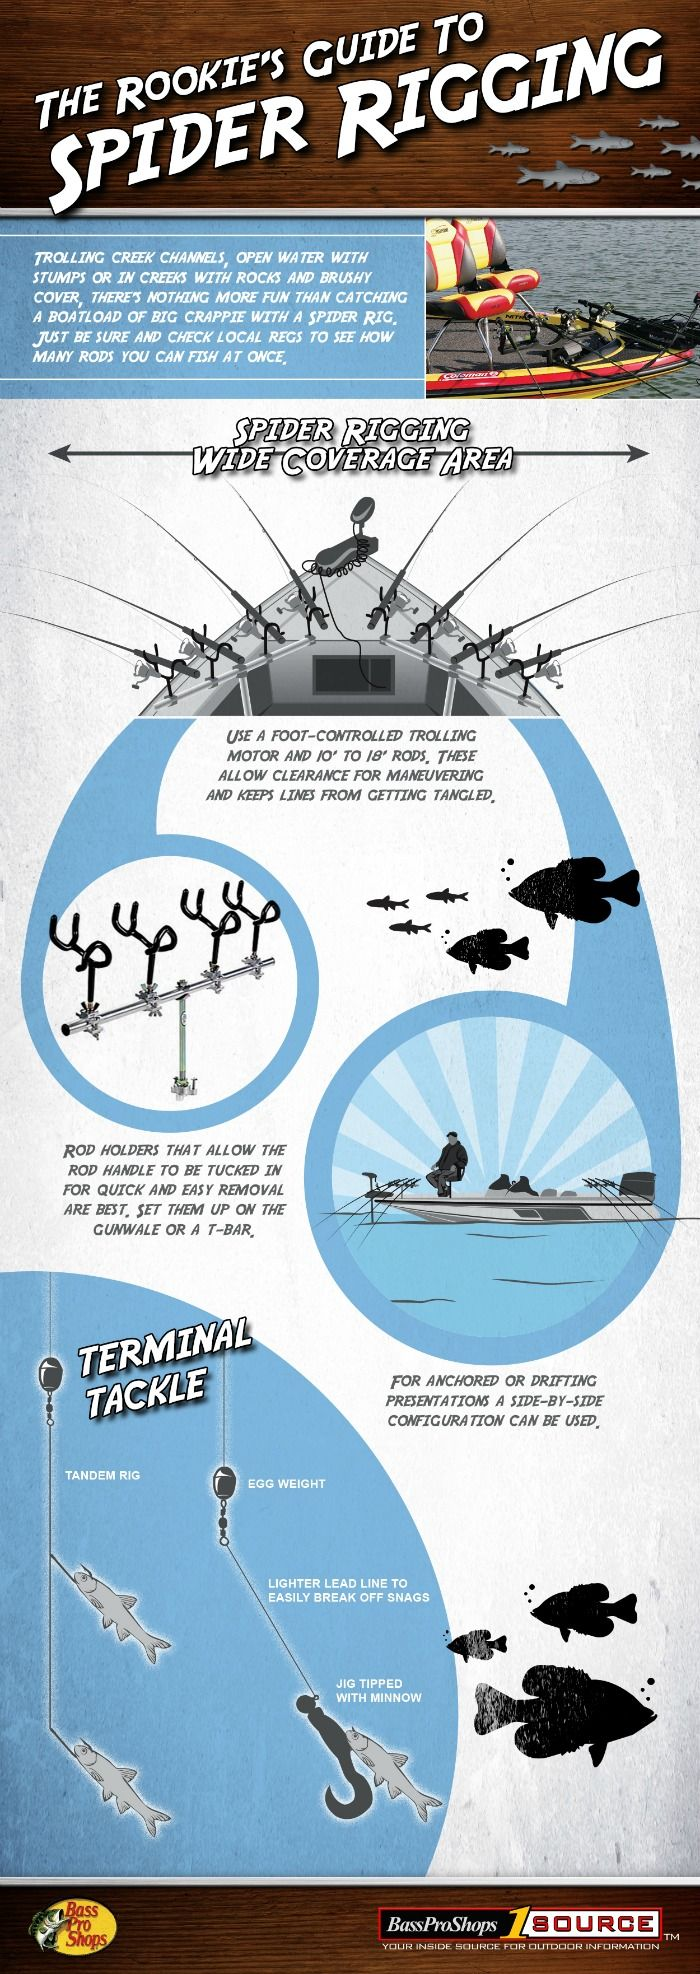 The rookie 39 s guide to spider rigging and the fastest for Spider rigs for crappie fishing